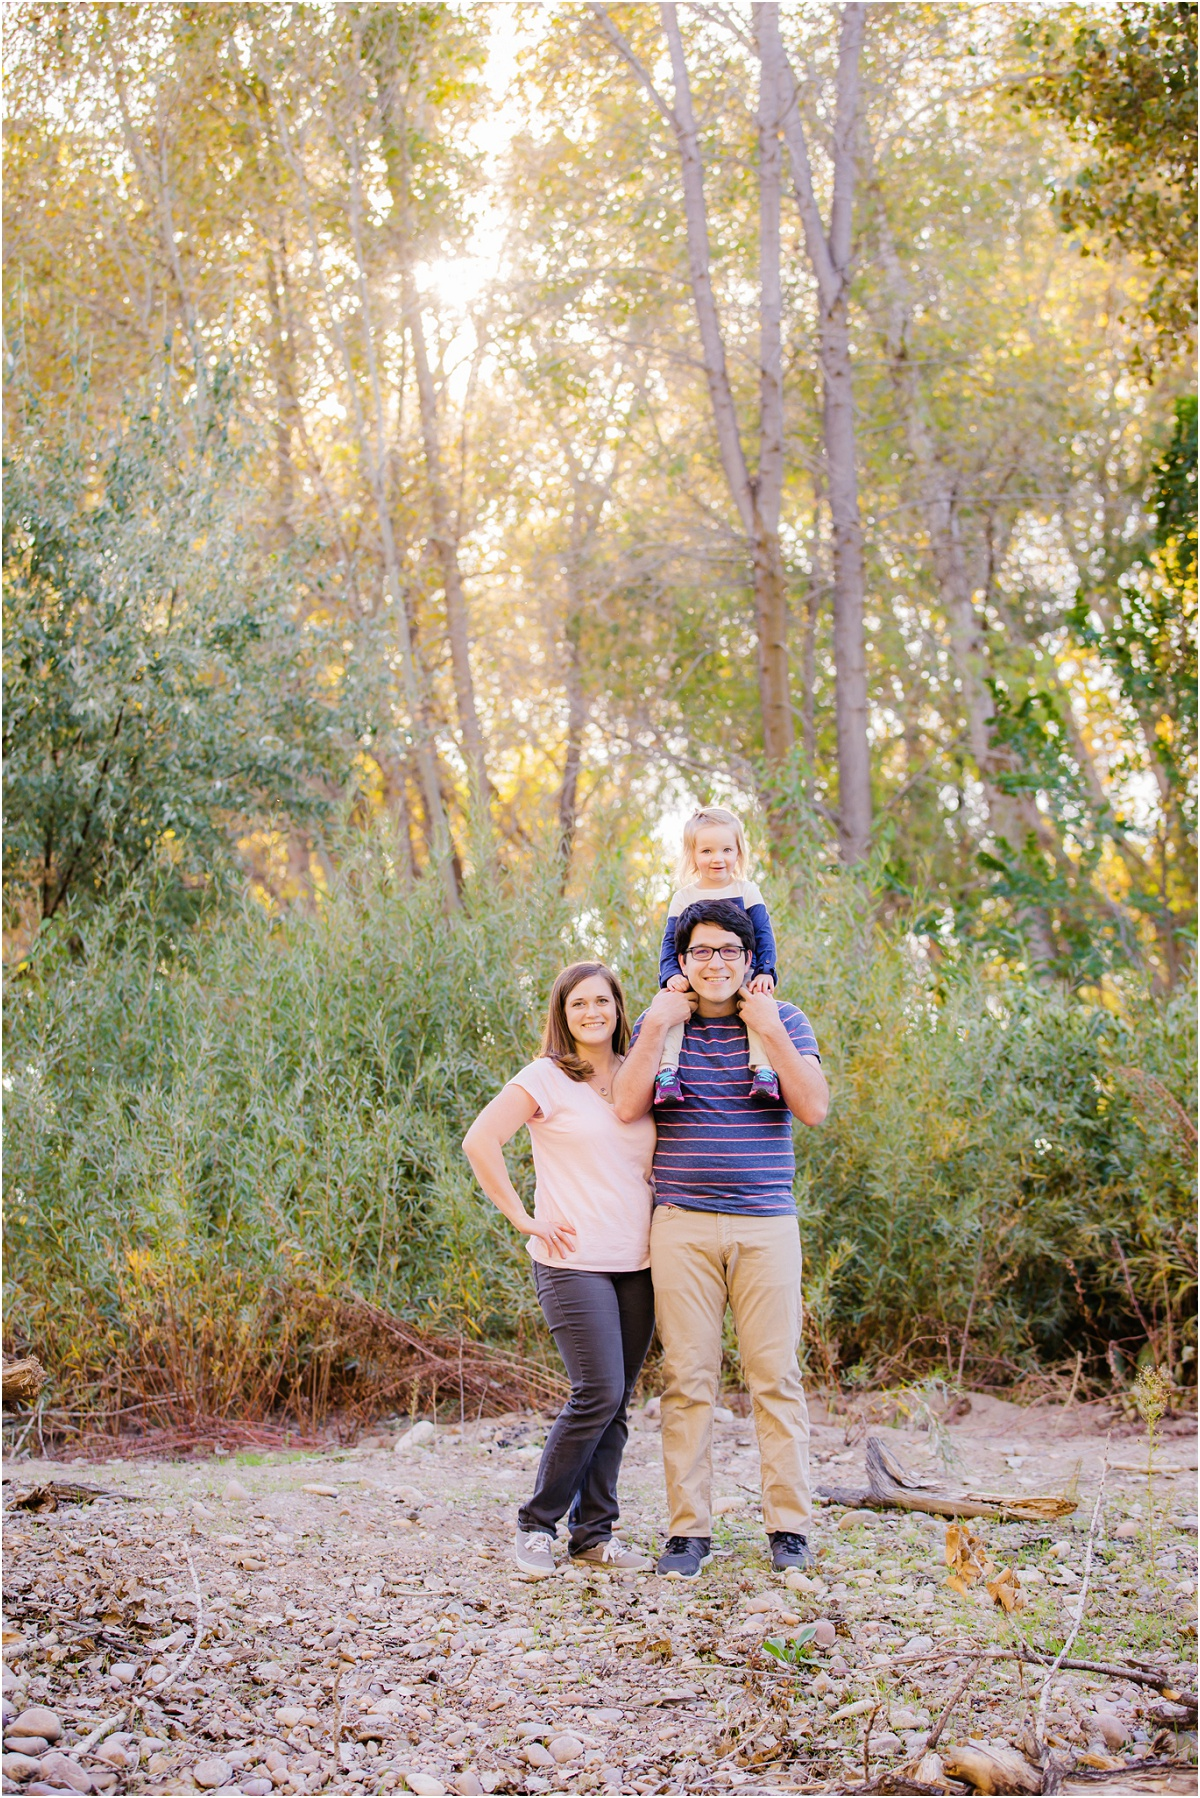 Terra Cooper Photography Utah Family Photography_5124.jpg